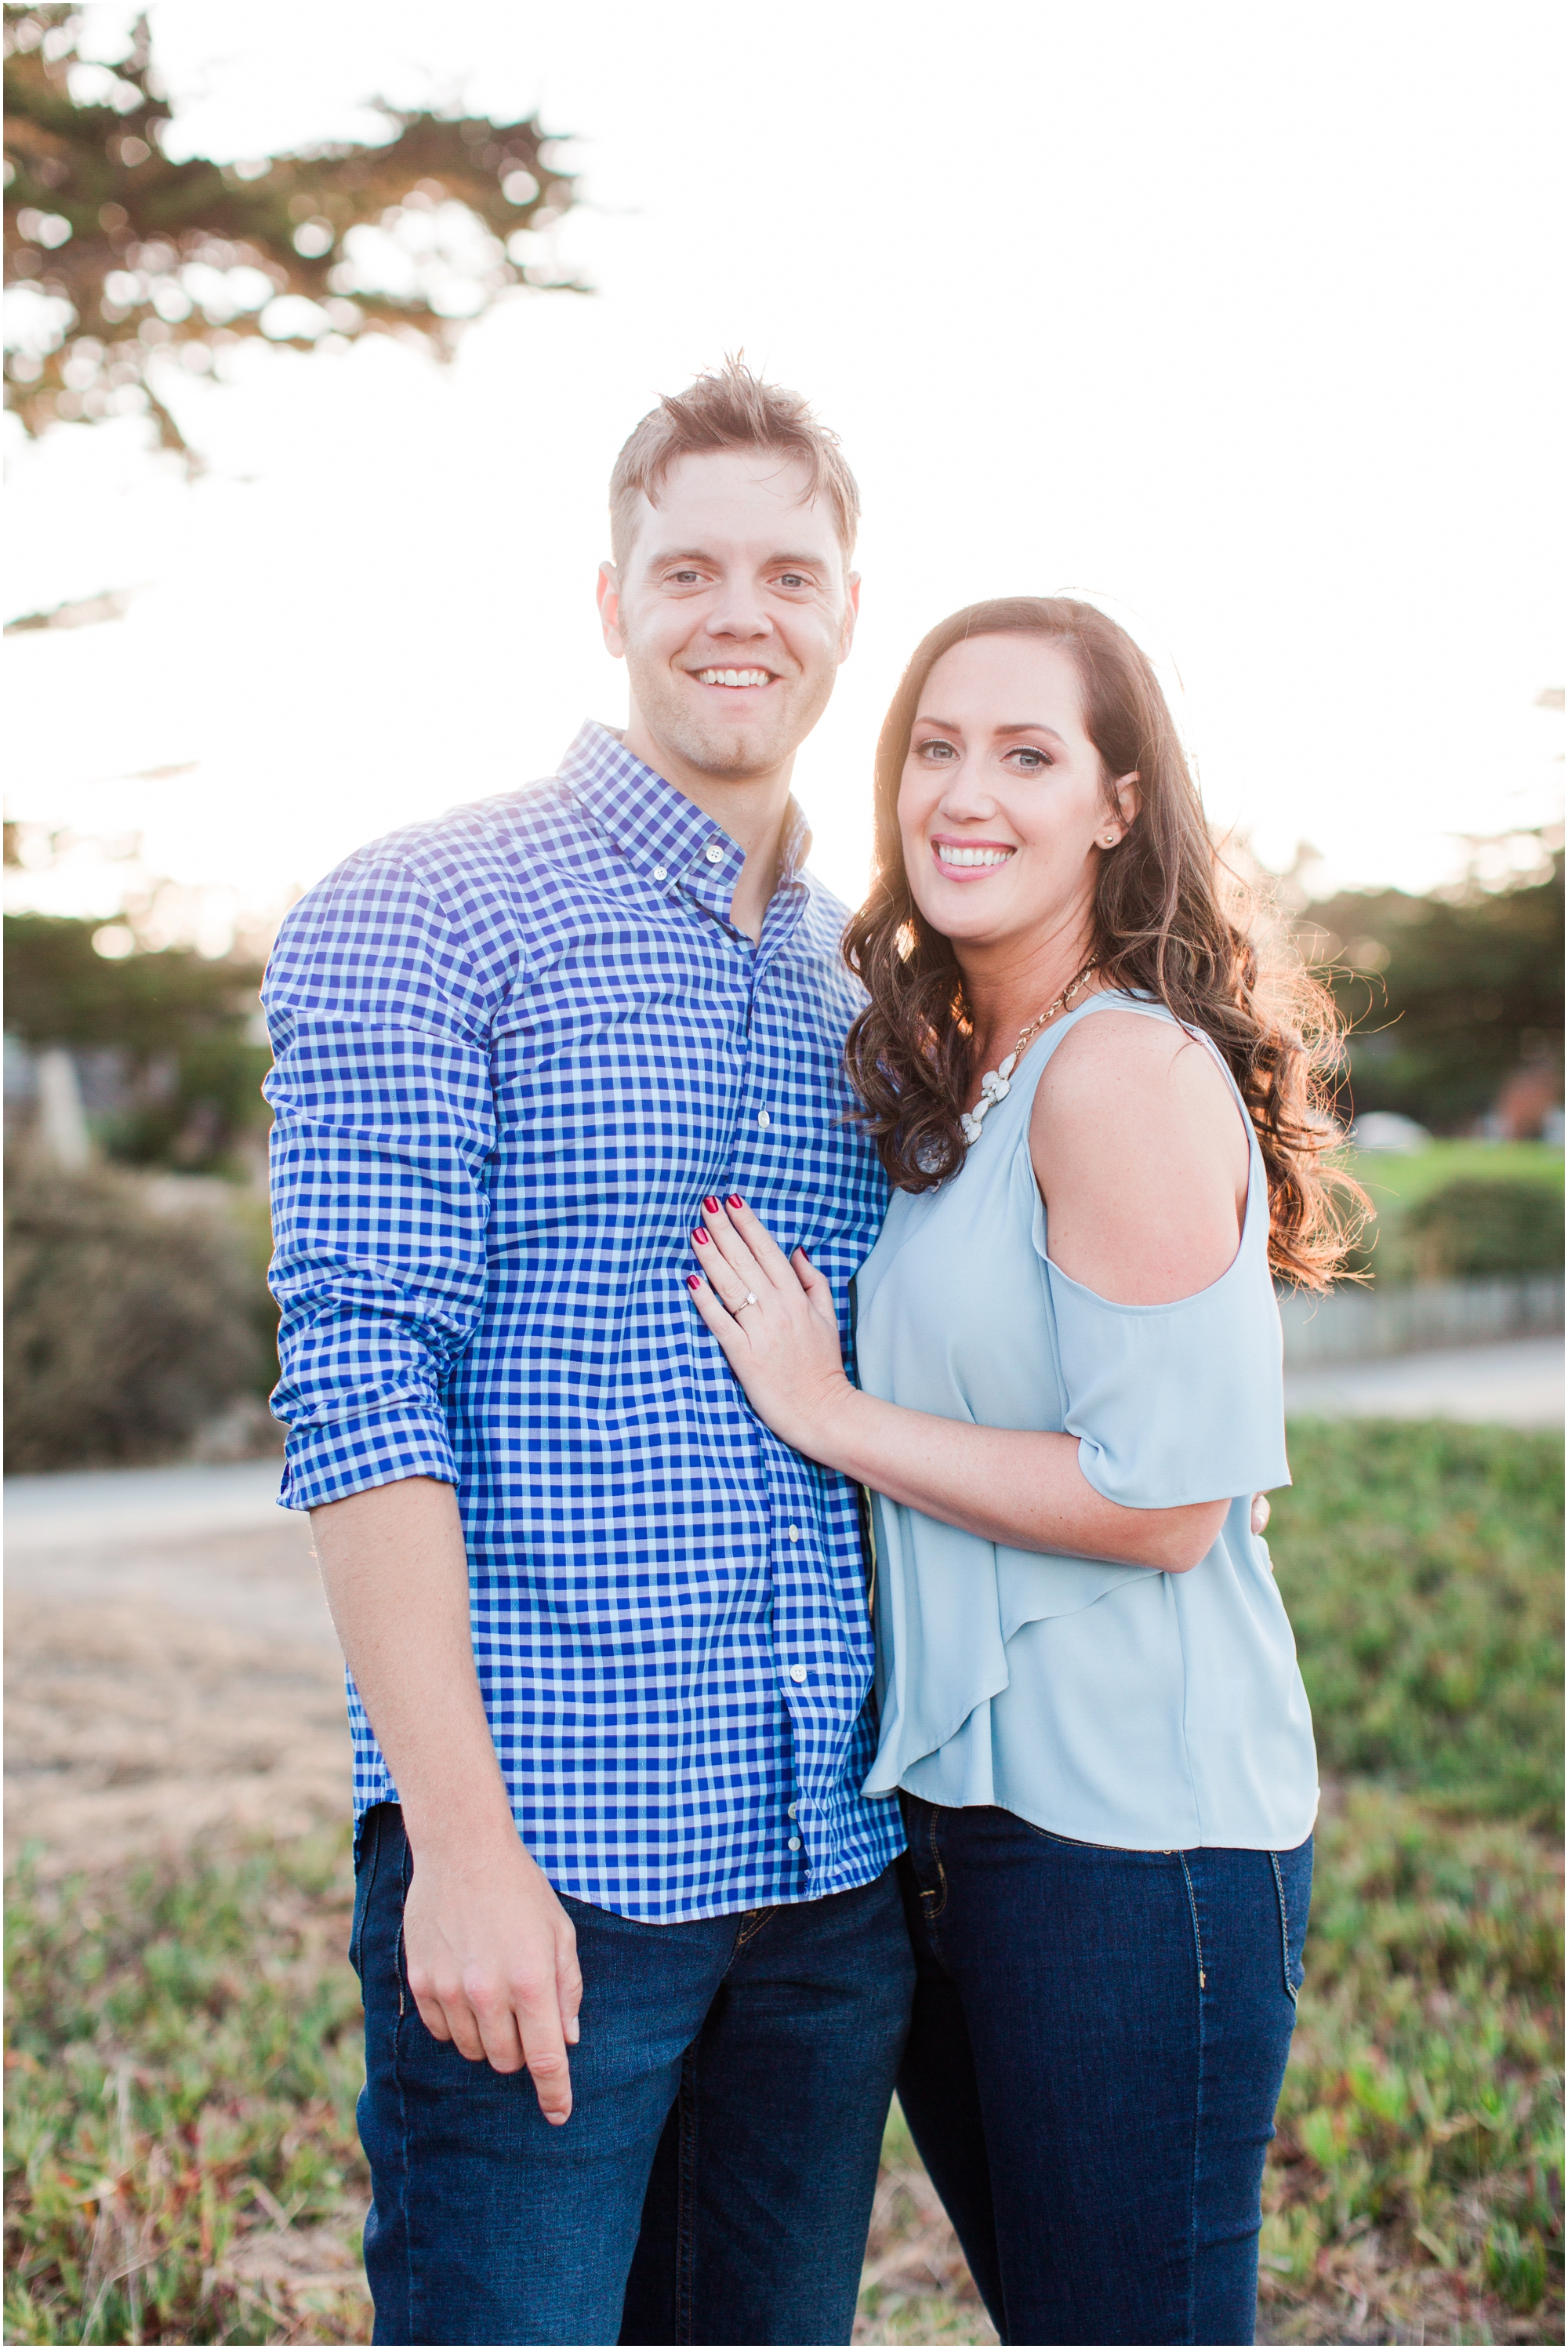 Berwick Park Monterey engagement pictures by Briana Calderon Photography_2396.jpg